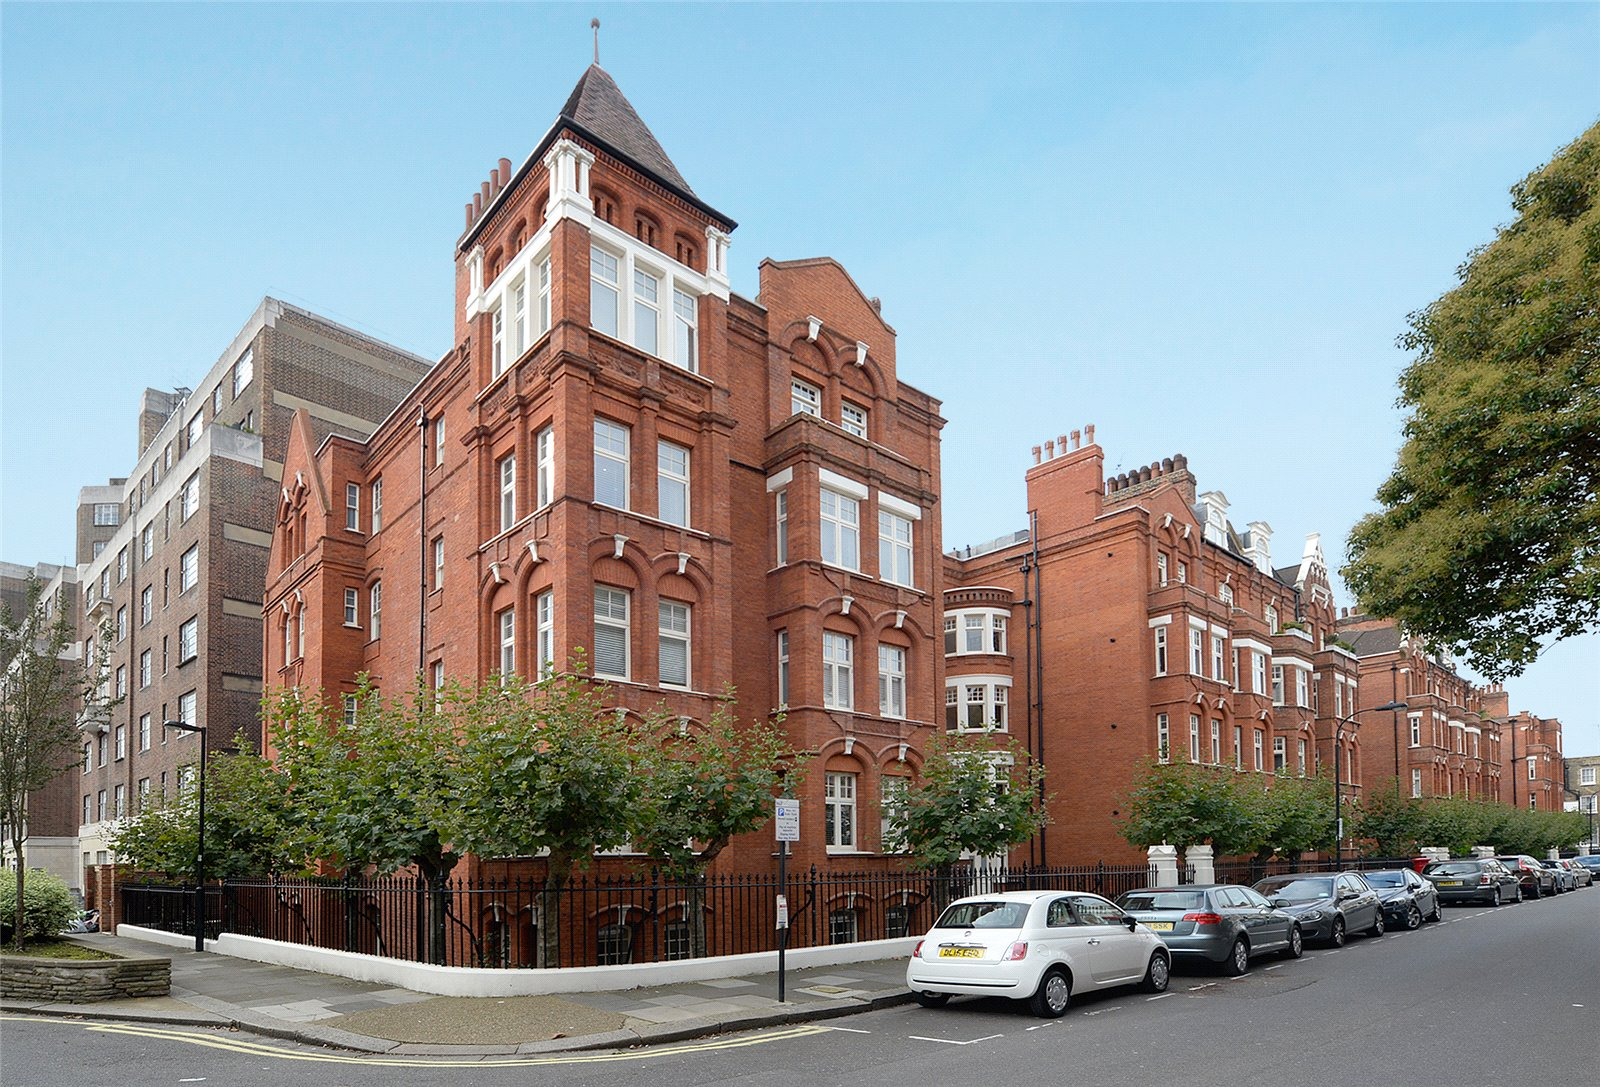 Apartment for Rent at Hamlet Gardens, Chiswick, London, W6 Hamlet Gardens, Chiswick, London, W6